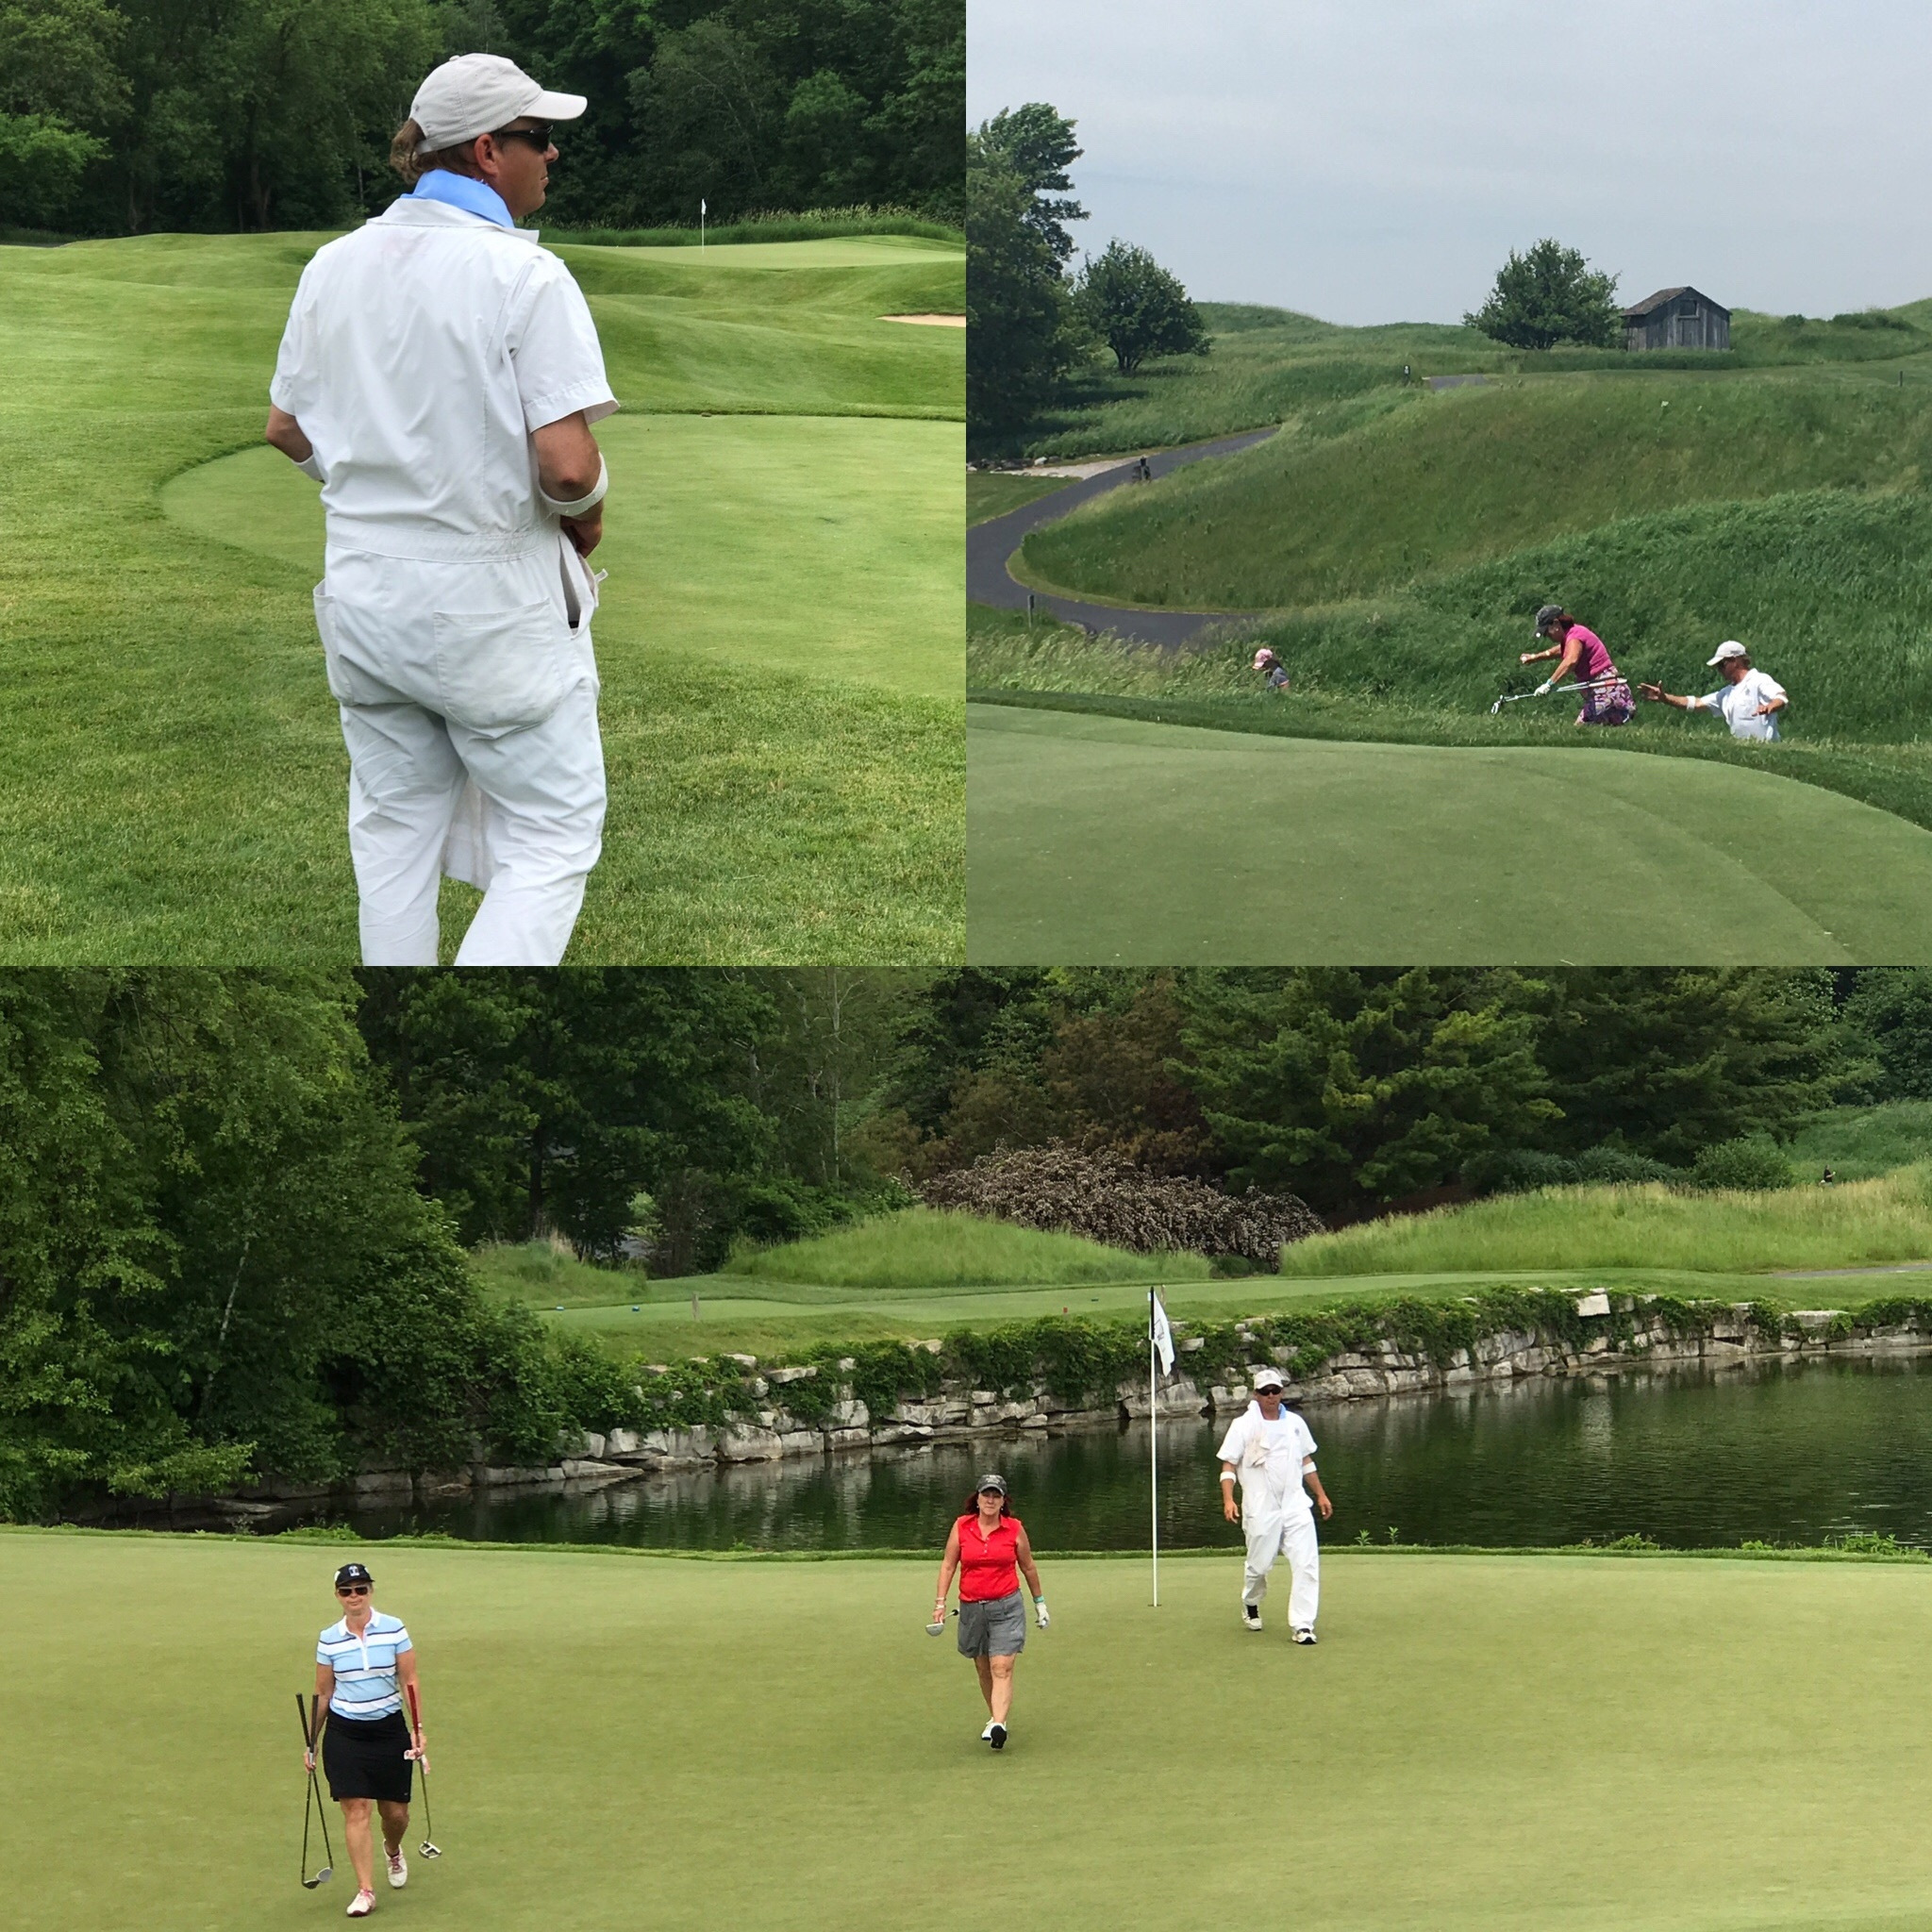 - Our last game at Kohler was on the Meadow Valley course. The back nine holes were most players'favorite, in spite of the fierce and challenging fescue for those who ventured off the fairways.